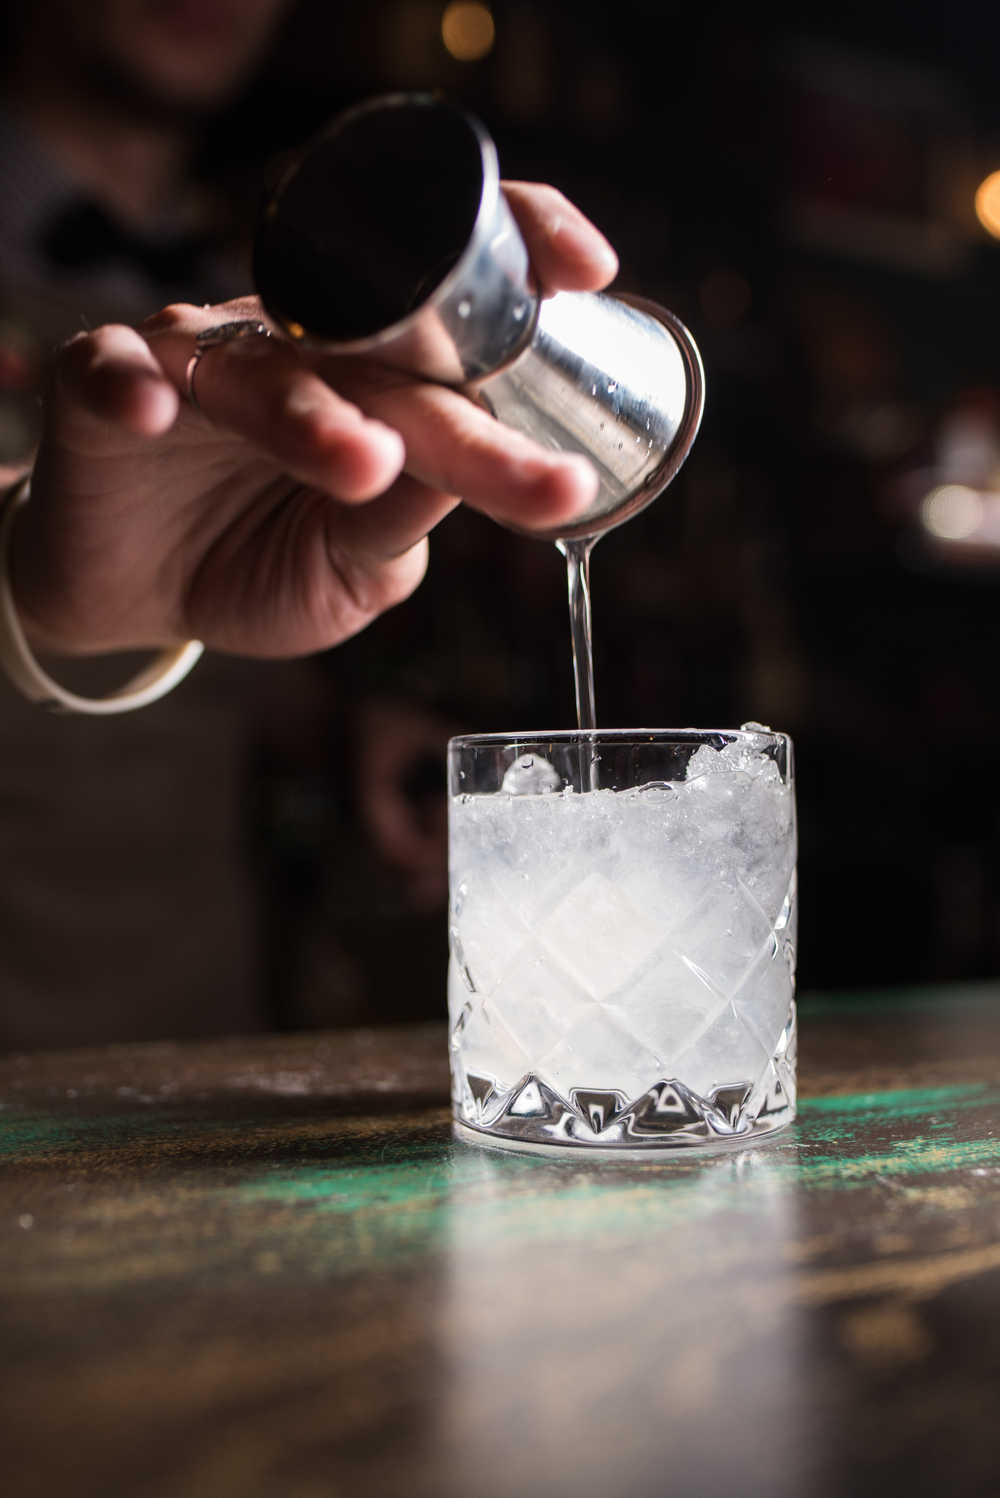 A bartender pouring vodka into a short glass over ice using a jigger for National Vodka Day.